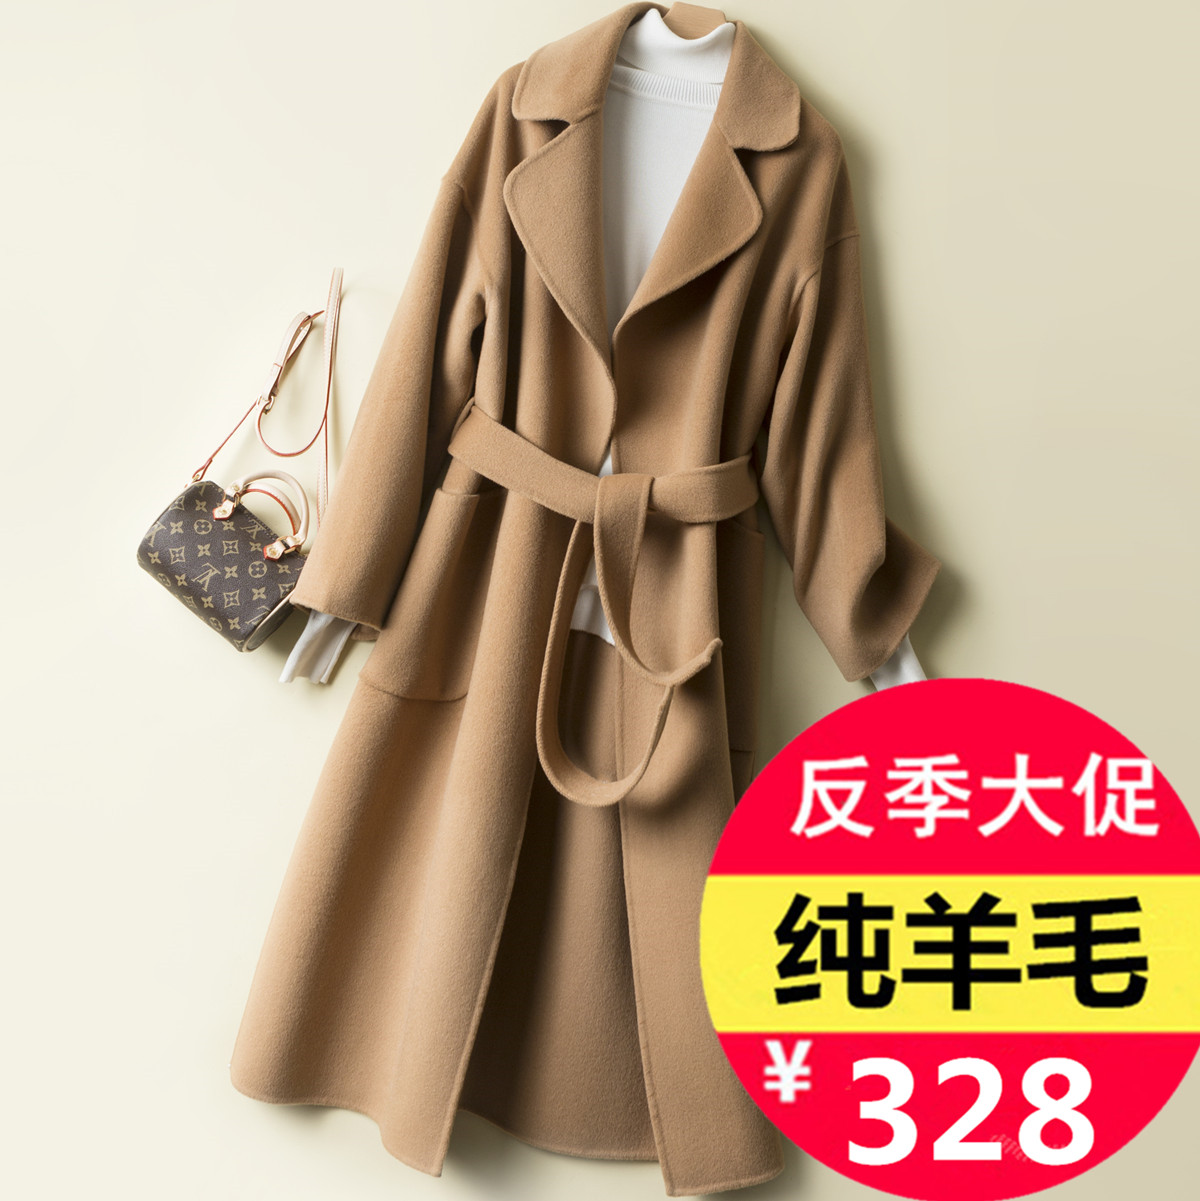 Autumn and winter Korean double faced pure wool overcoat women's long loose over the knee woolen cloth coat with cashmere free outside